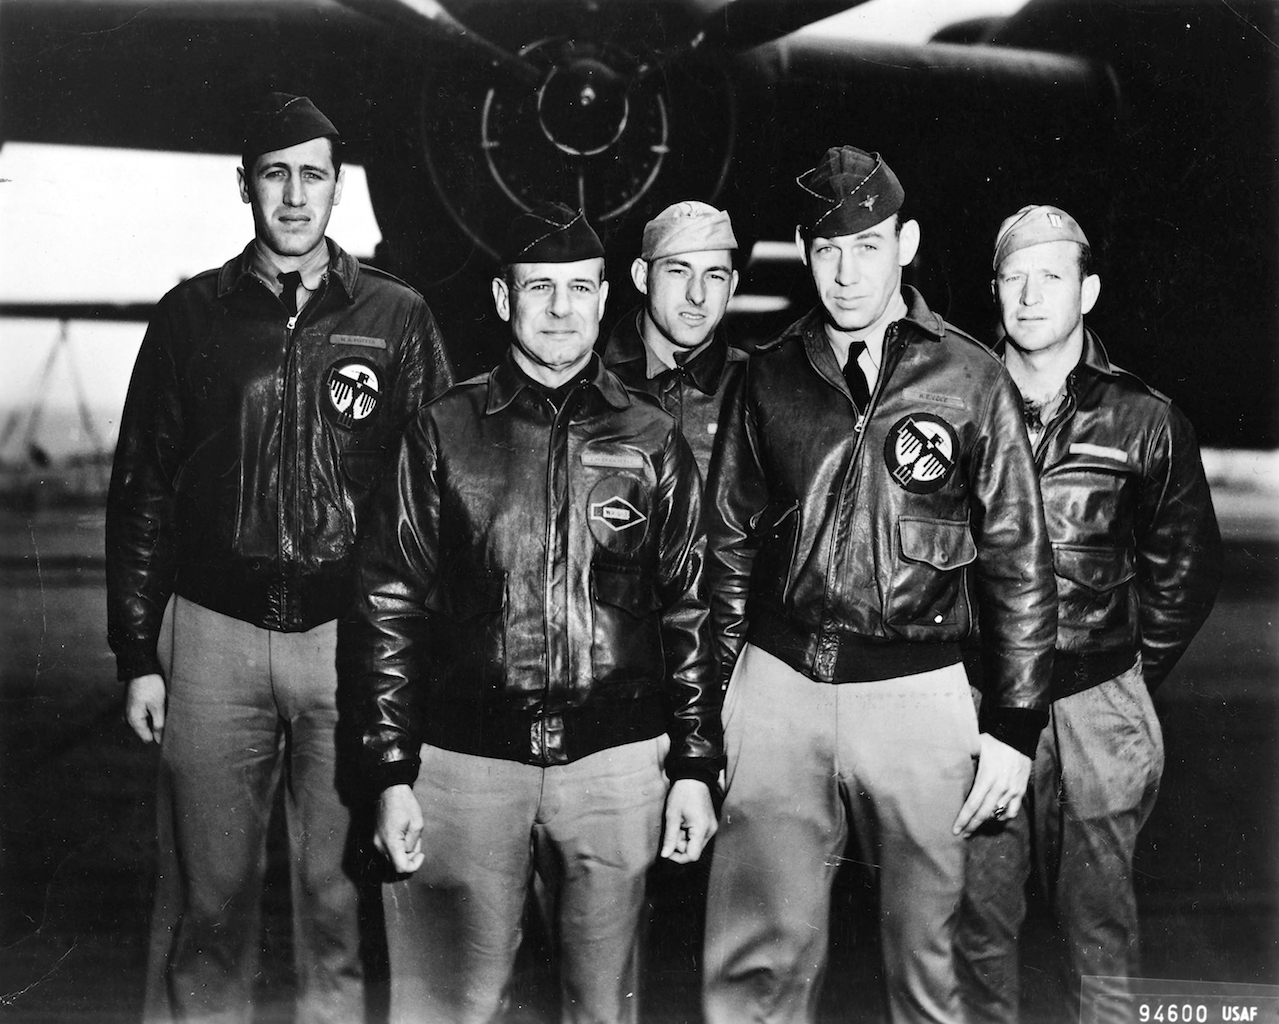 Doolittle Tokyo Raiders Crew 1 Left to Right:  Lt. Henry A Potter, Navigator- Lt. Col. James H. Doolittle, Pilot - S/Sgt Fred A Braemer, Bombardier -  Lt. Richard E. Cole, Co-Pilot -  S/Sgt Paul J. Leonard, Engineer-Gunner